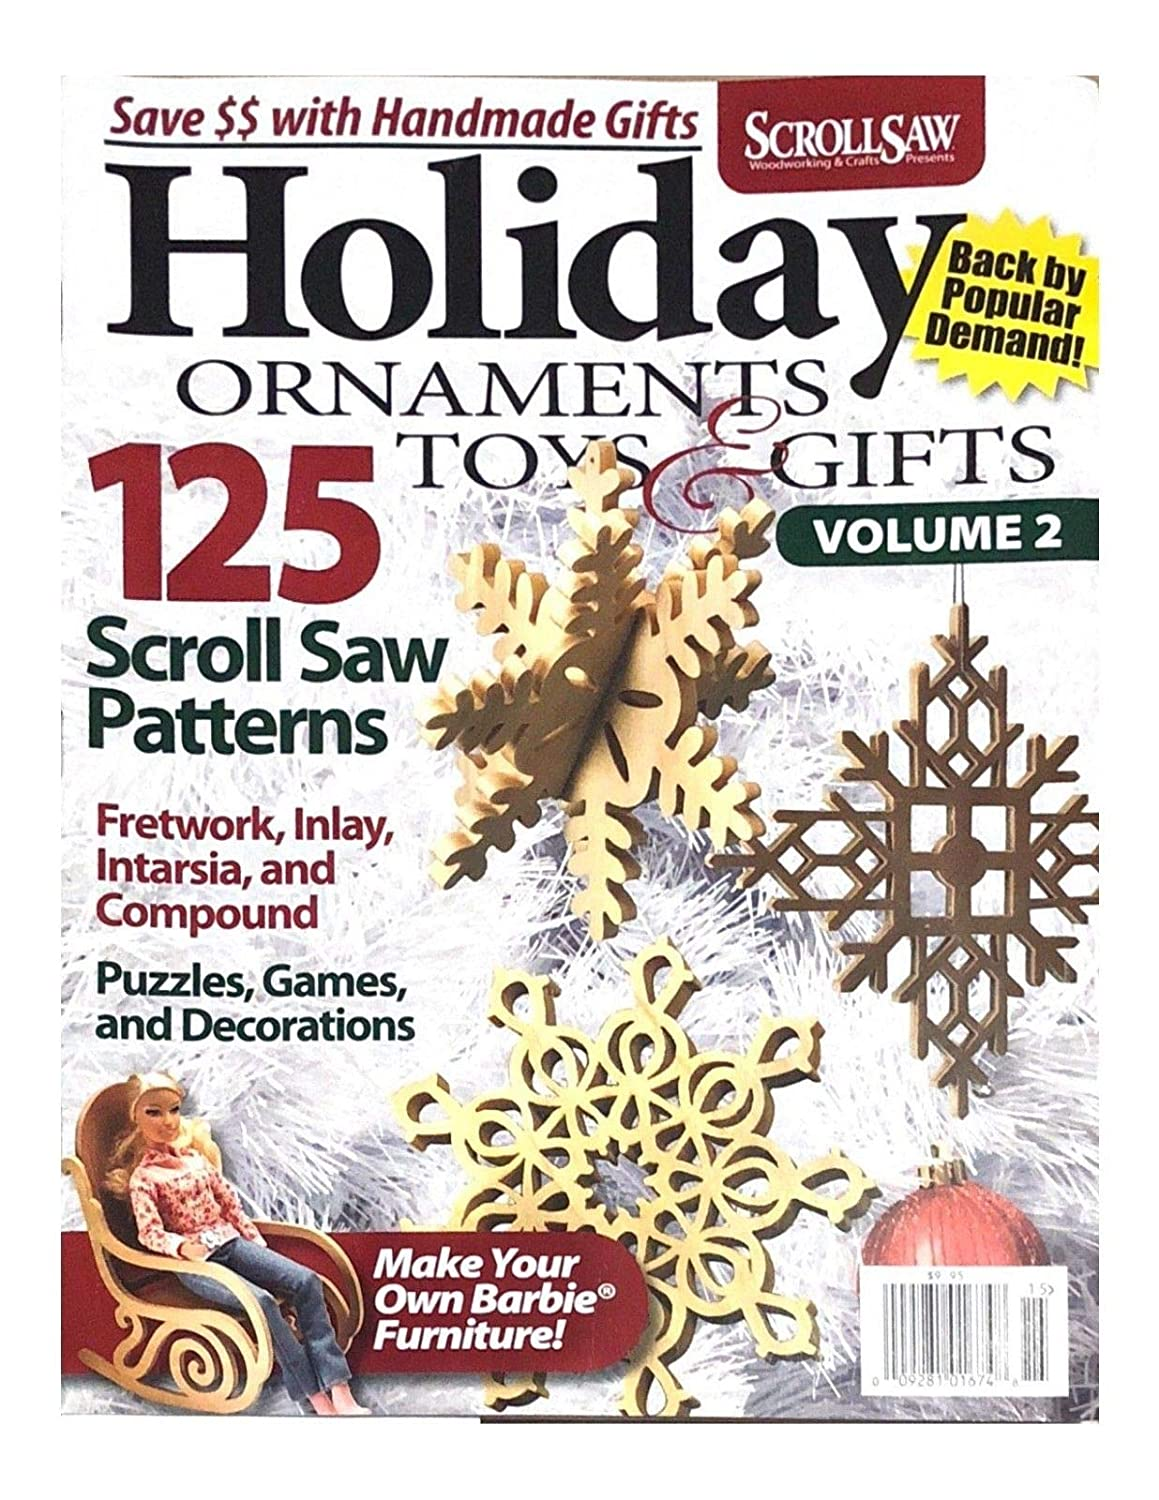 SCROLL SAW WOOD WORKING & CRAFTS MAGAZINE, ORNAMENTS TOYS & GIFTS VOL.2 s3457